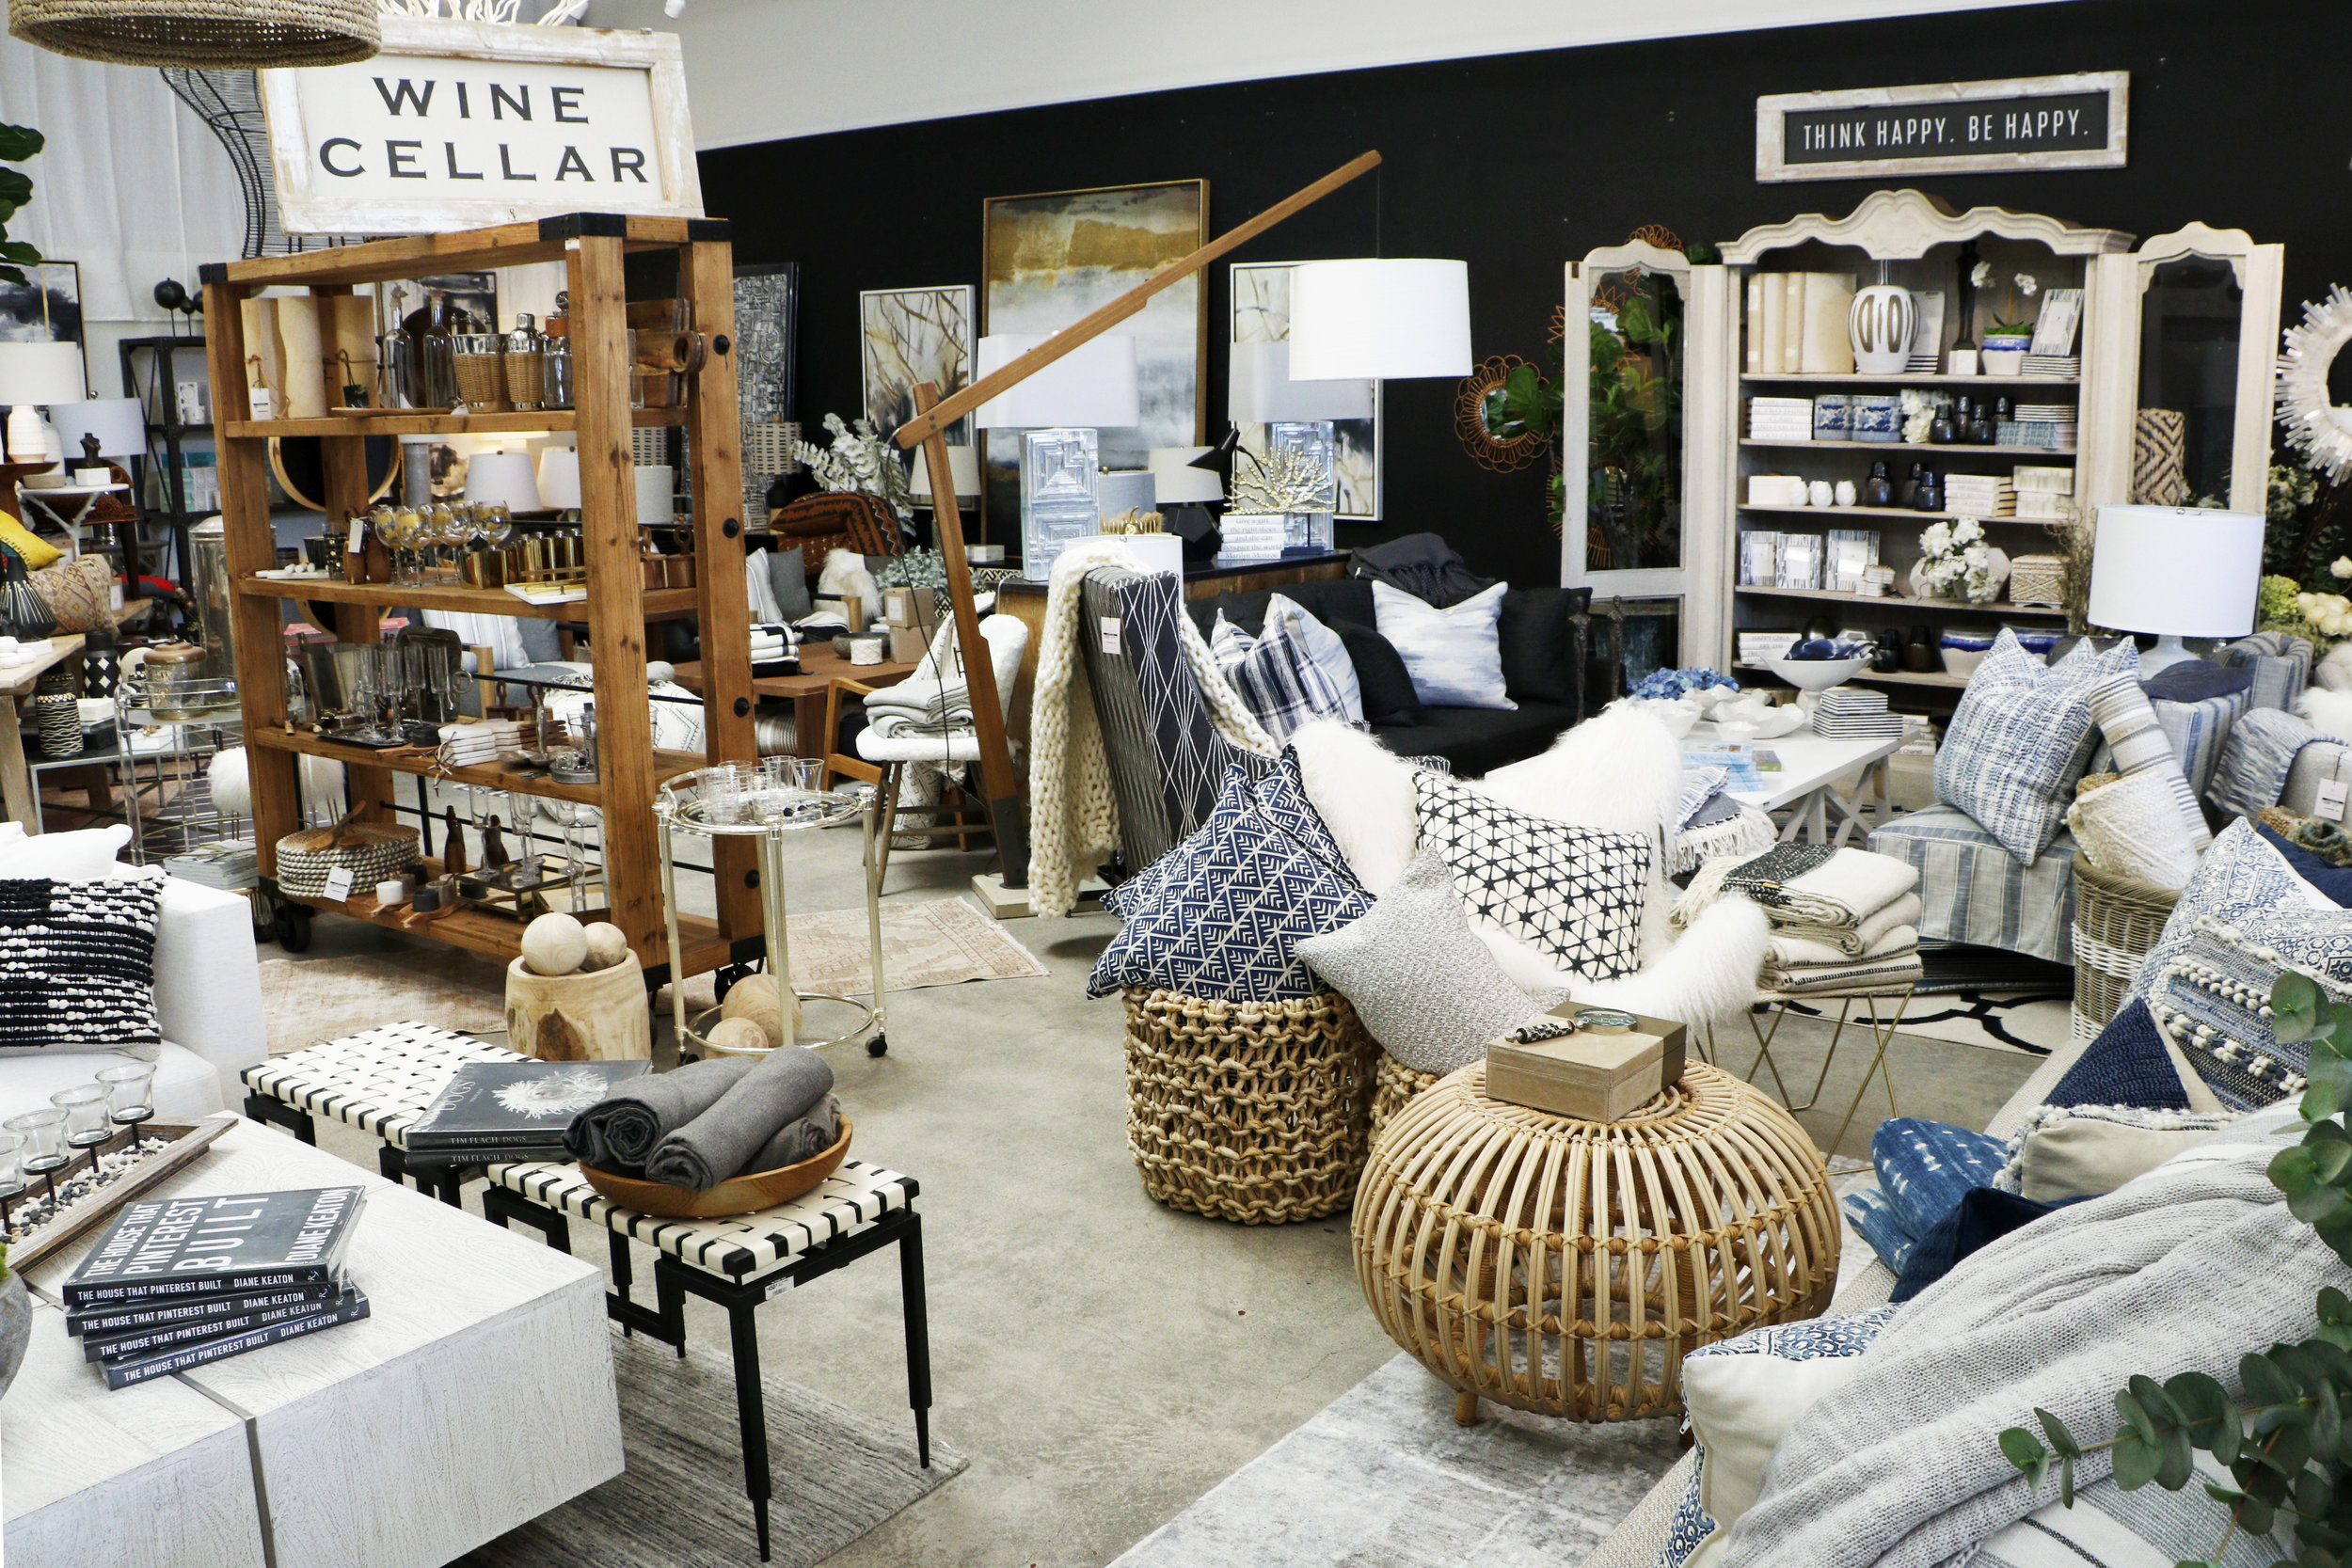 SHOP OUR LOOK - From custom upholestry to vintage and antique finds, our style is readily available online and in our Costa Mesa retail shop - The Wonder Room.